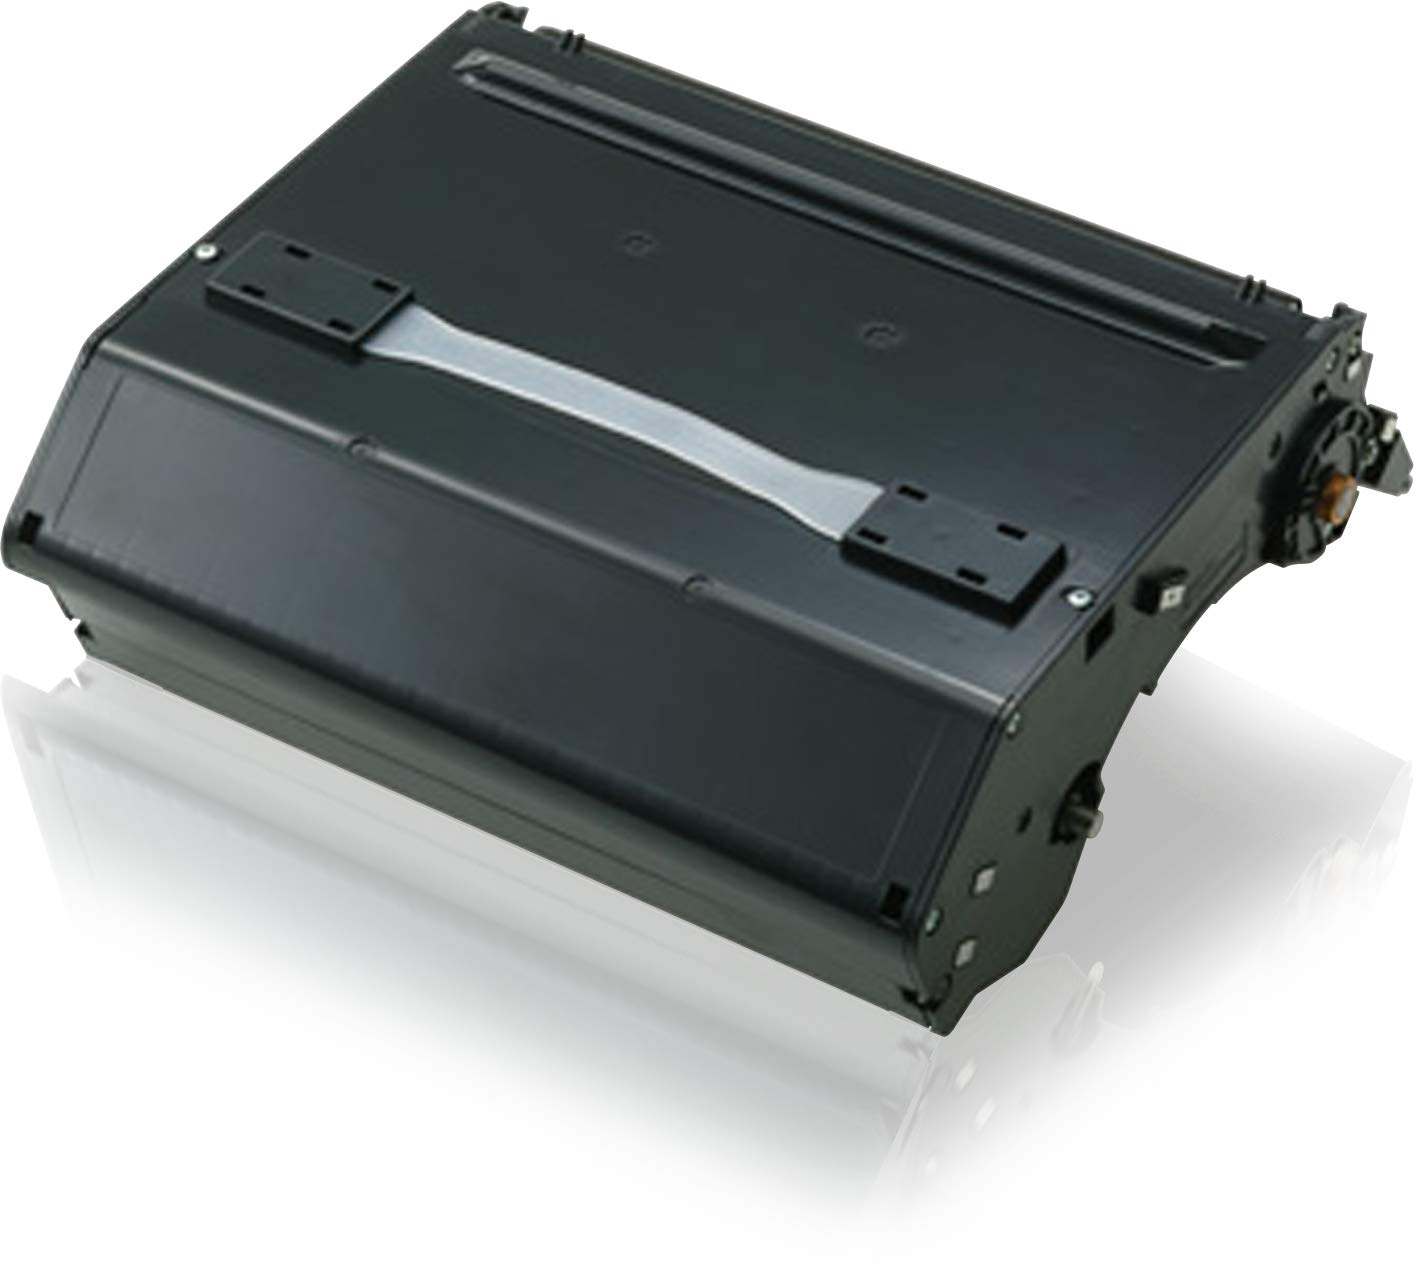 EPSON AL C1100 DRIVERS FOR PC